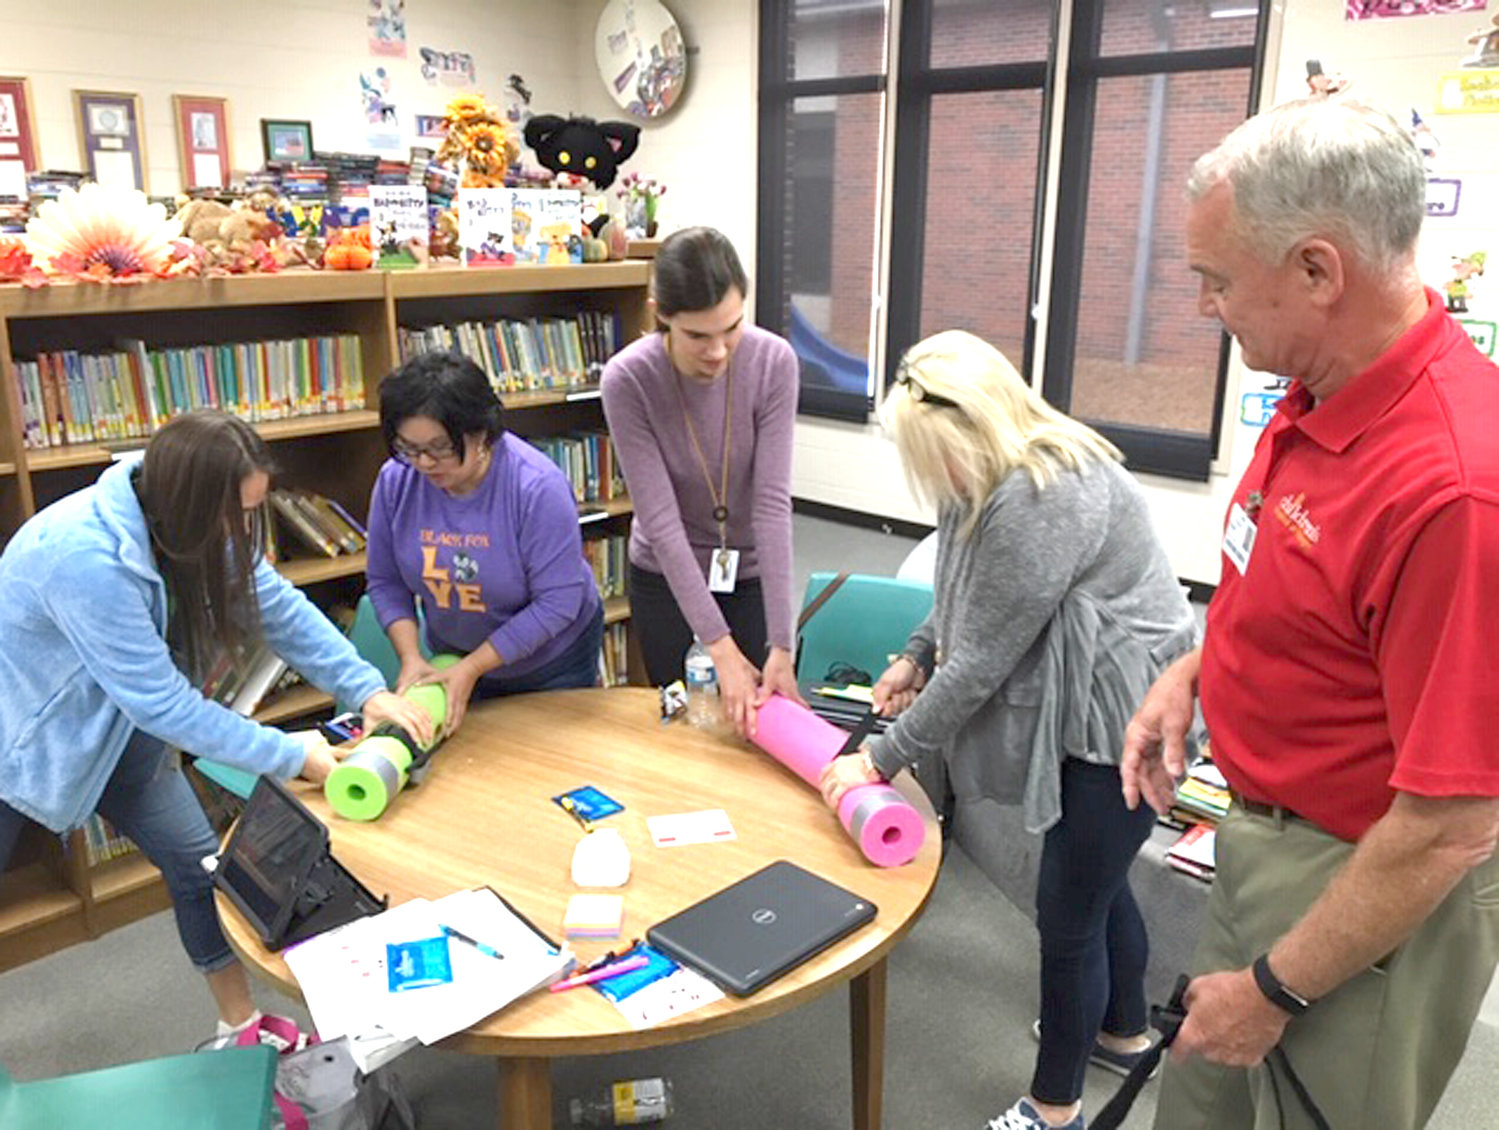 Black Fox Elementary teachers worked with nurse Valerie Lamon and Safety Educators Donna McBride and Robert Ward to provide valuable first aid training. Robert Ward supervises first-grade teachers Naomi Dycus, Janni Samples, Tori Willcutt and Sandy West in proper tourniquet procedures.